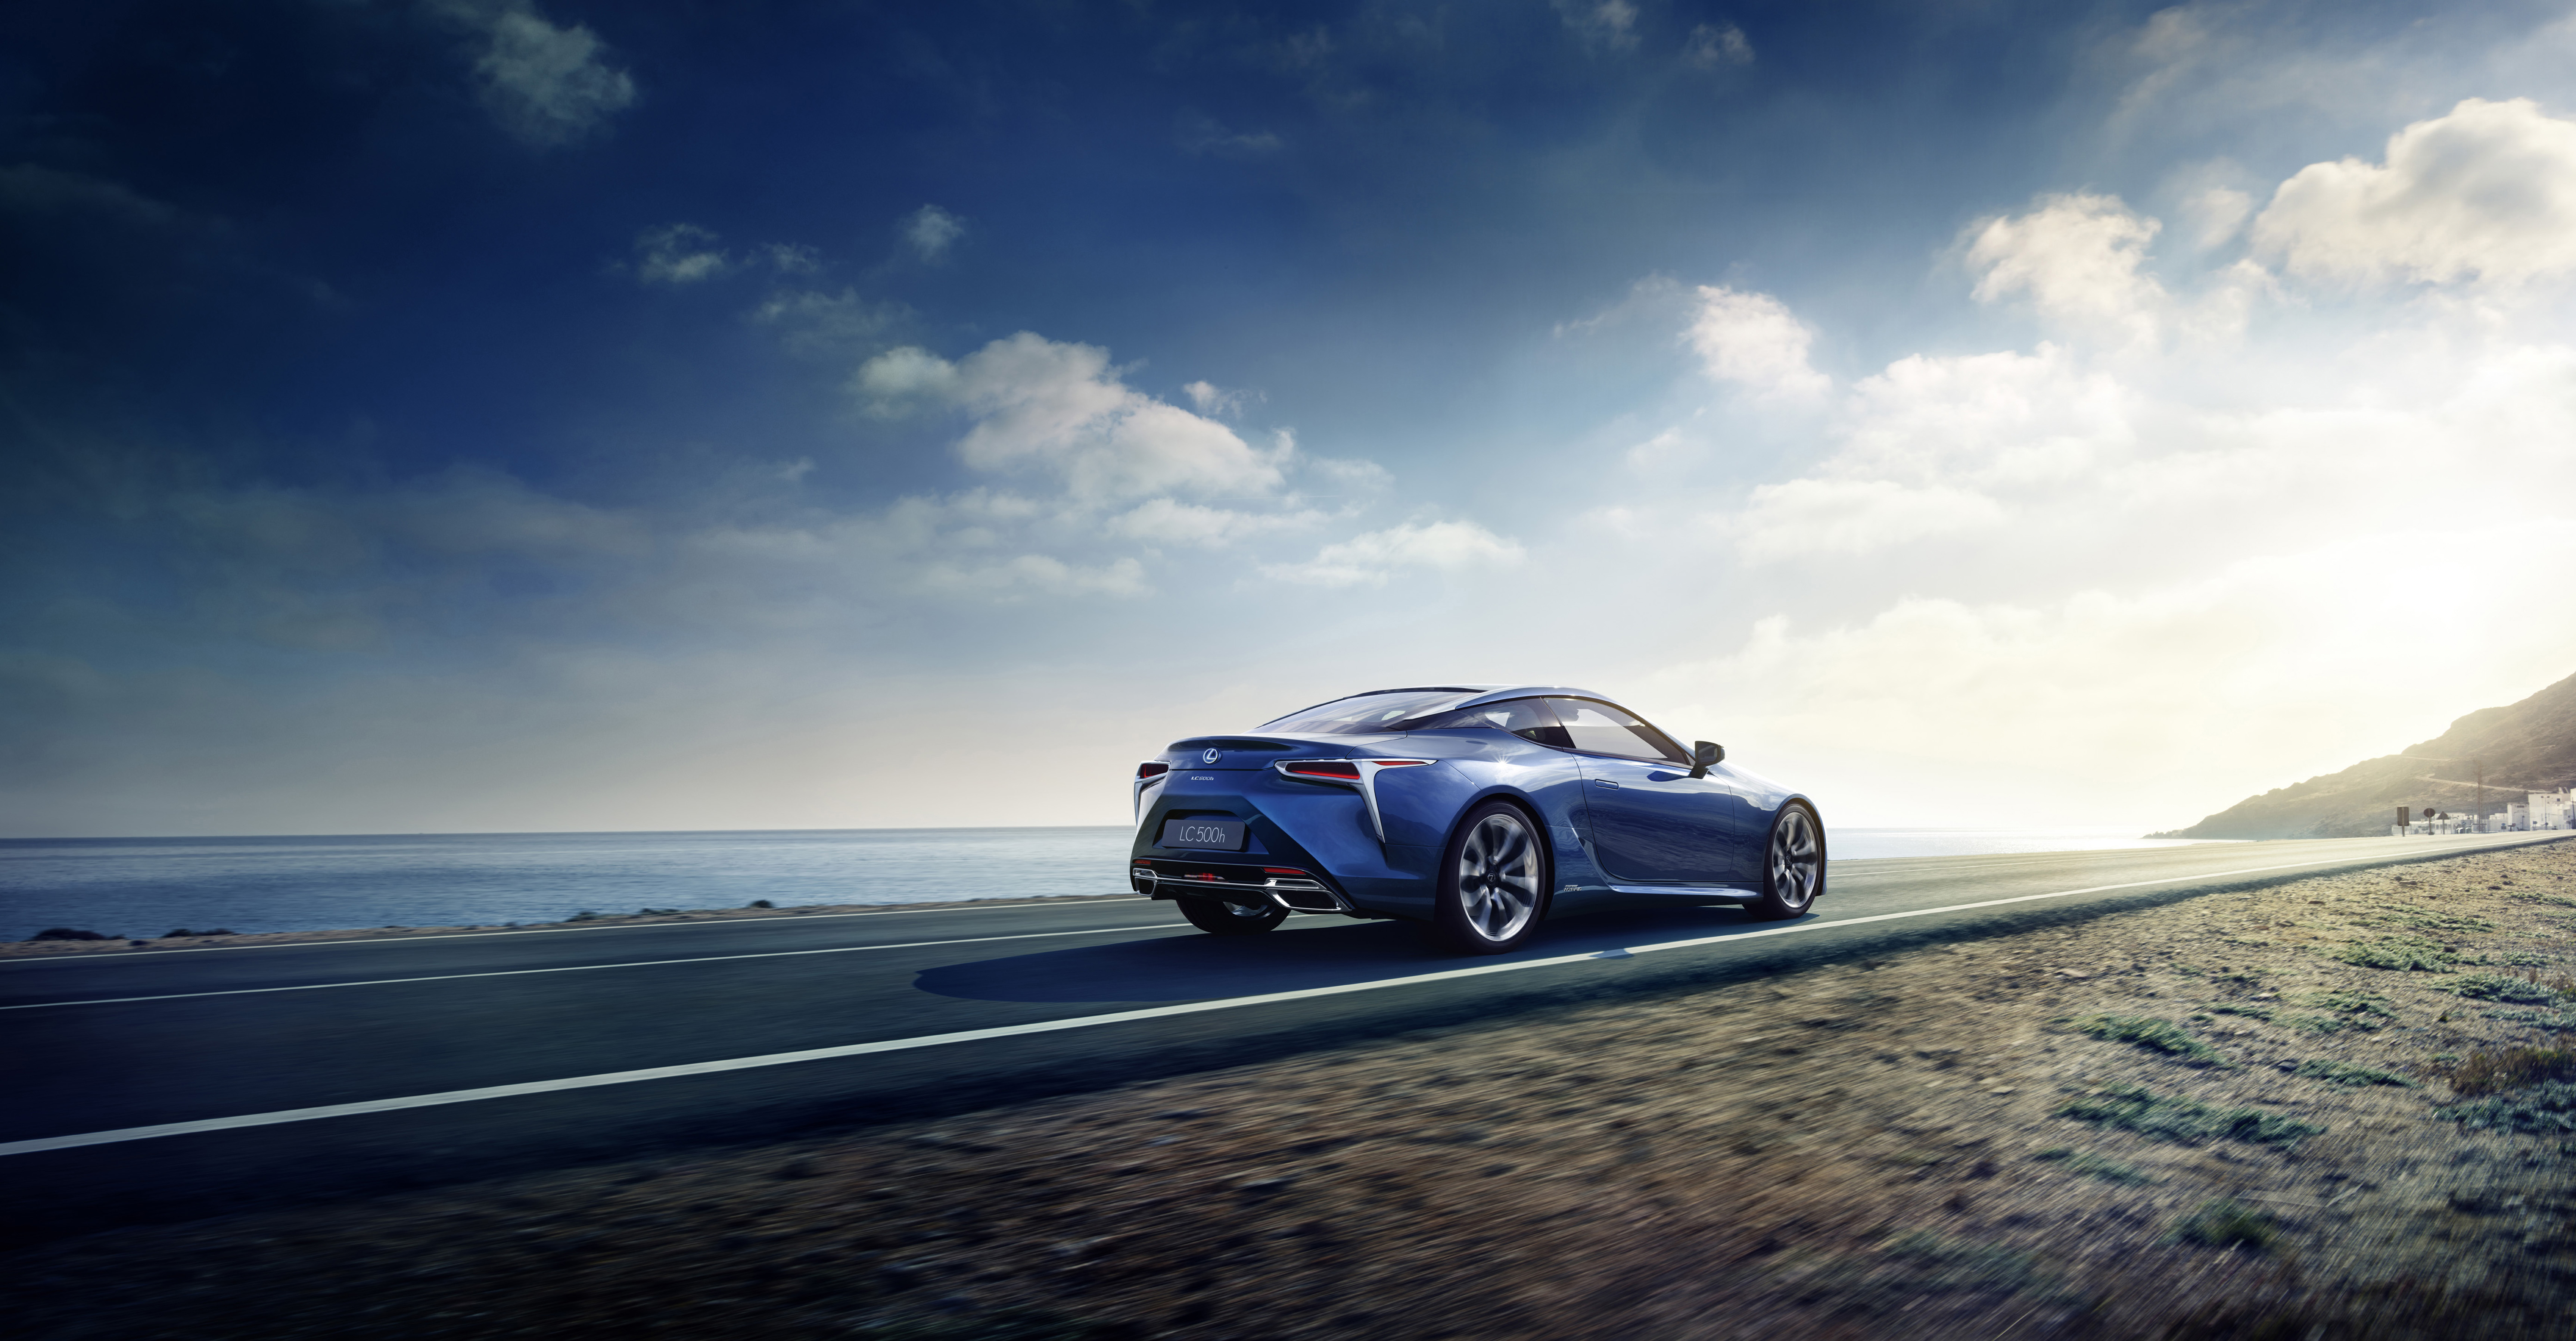 2018 lexus lc 500h hd cars 4k wallpapers images - Wallpaper hd 4k car ...